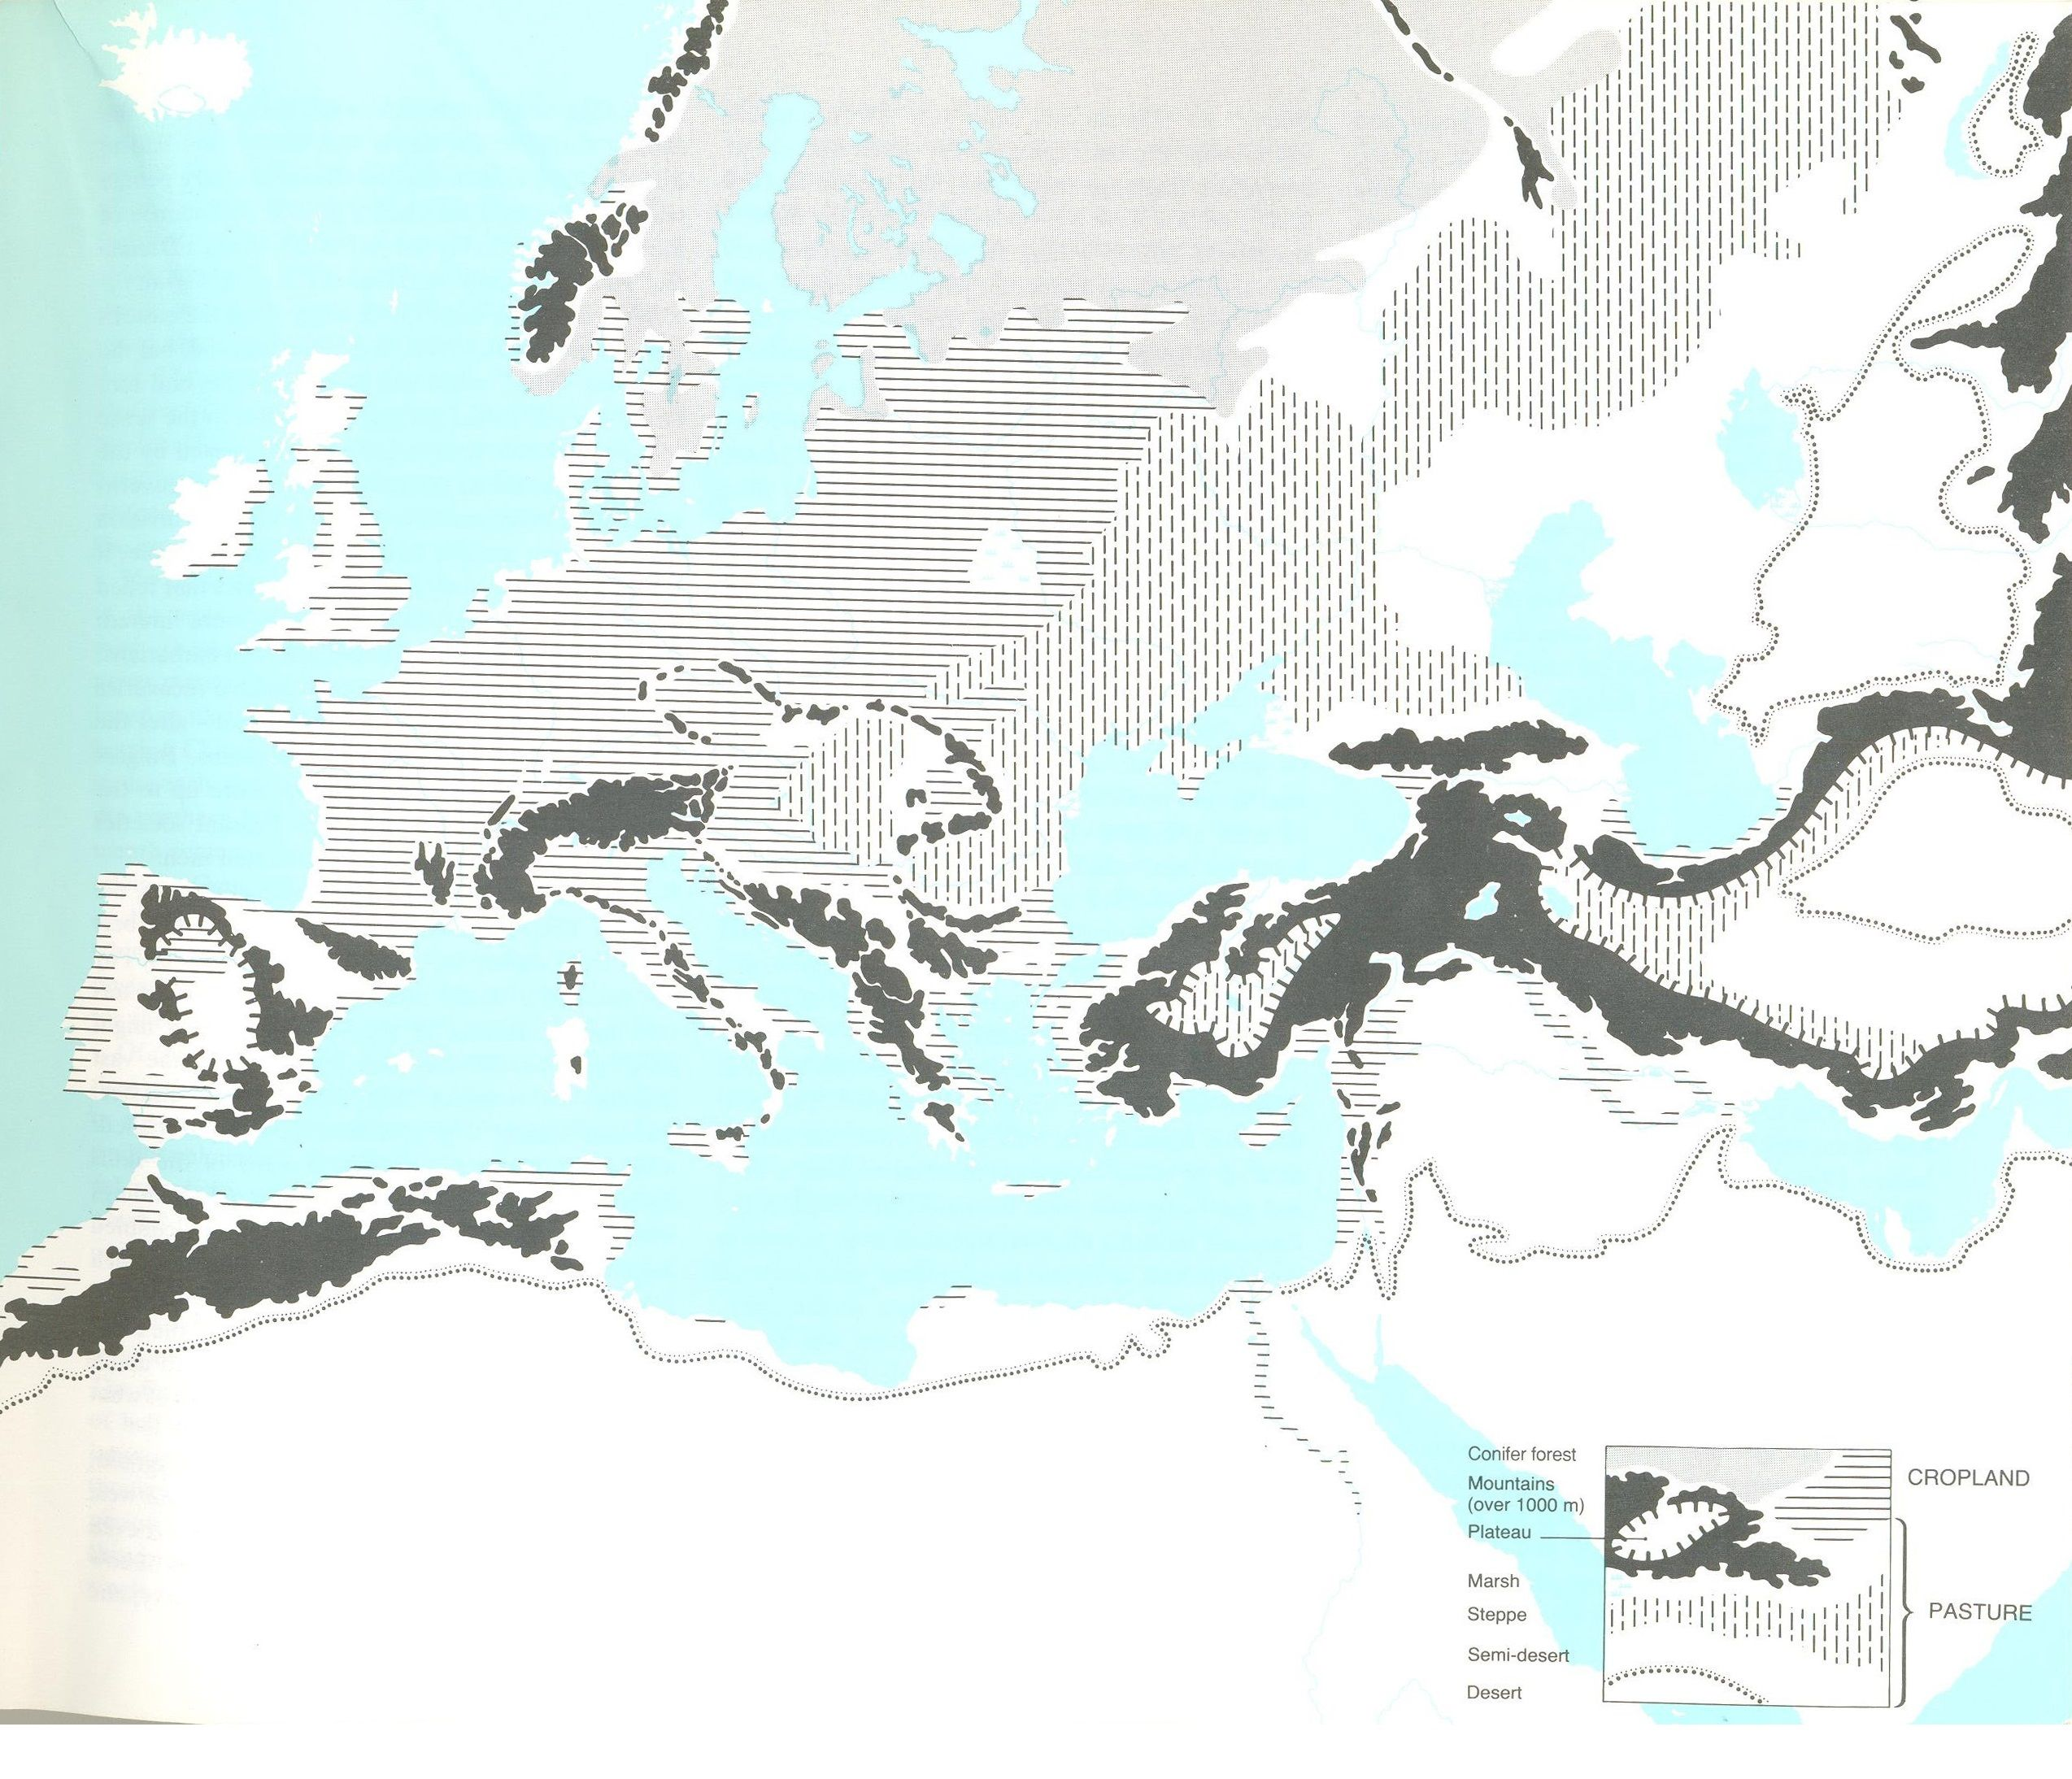 The terrain of Europe and the Middle